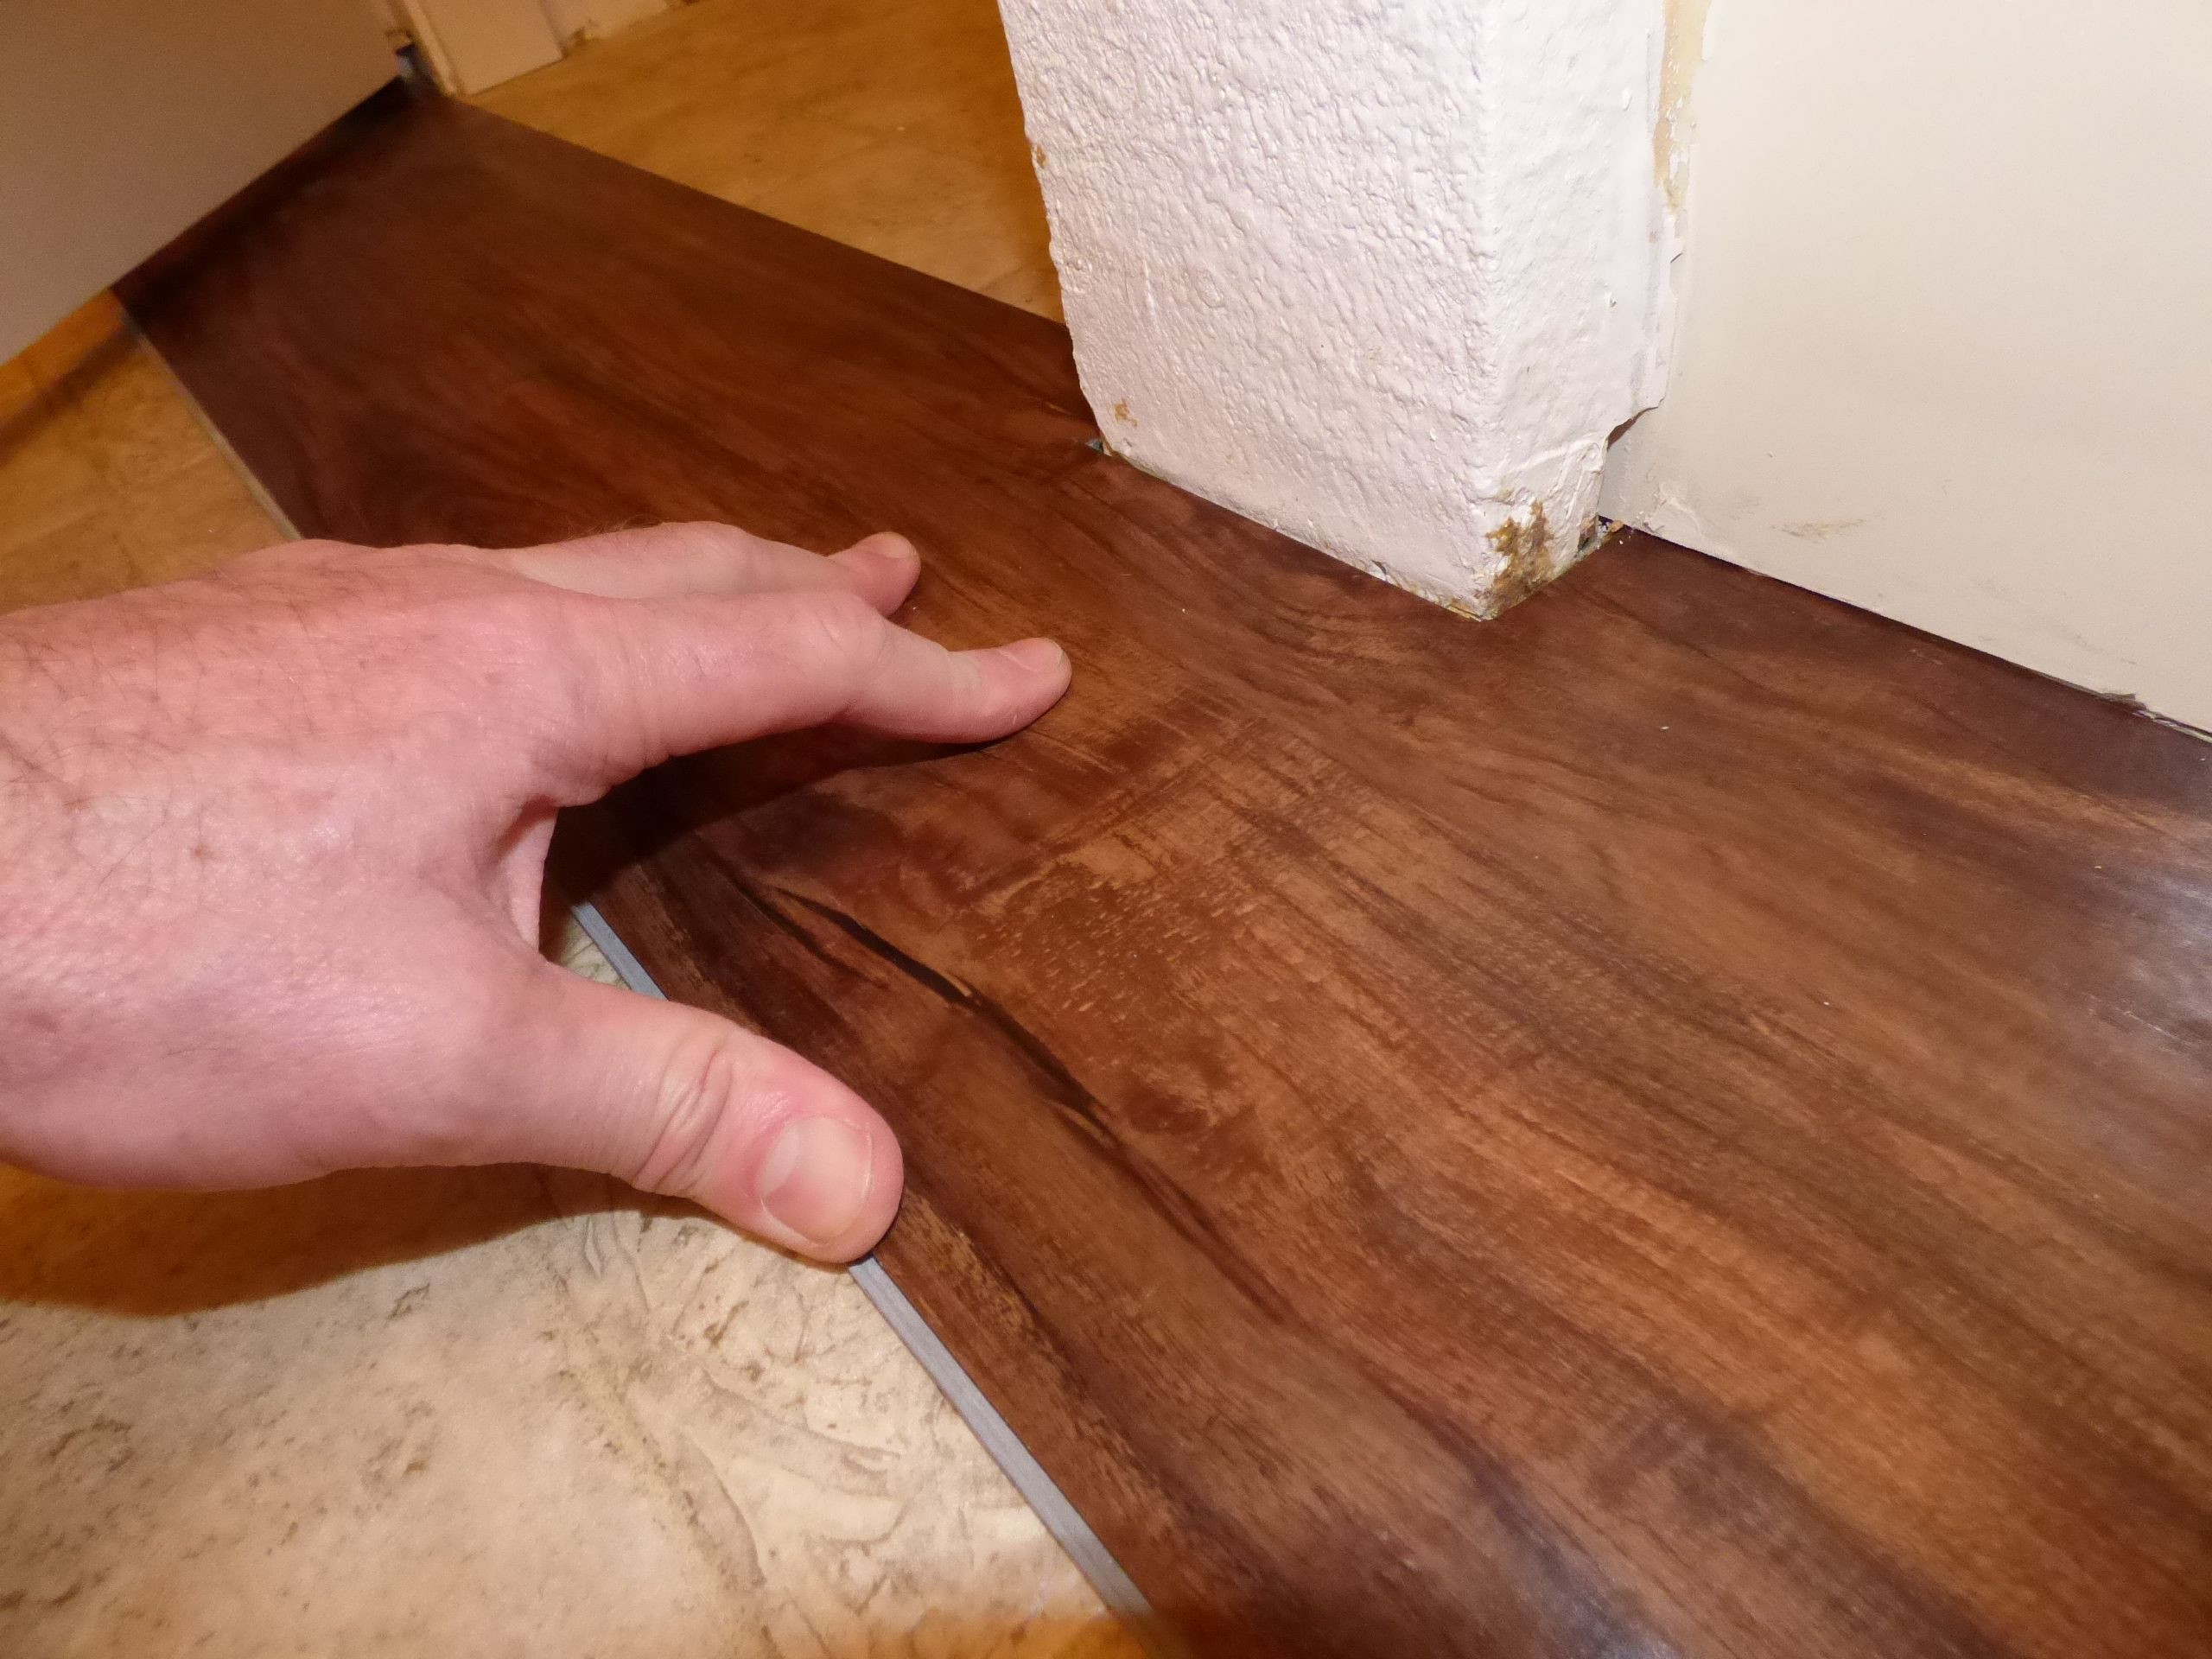 hardwood floor nail gun reviews of its easy and fast to install plank vinyl flooring throughout fitting plank around protrusions 56a4a04f3df78cf7728350a3 jpg